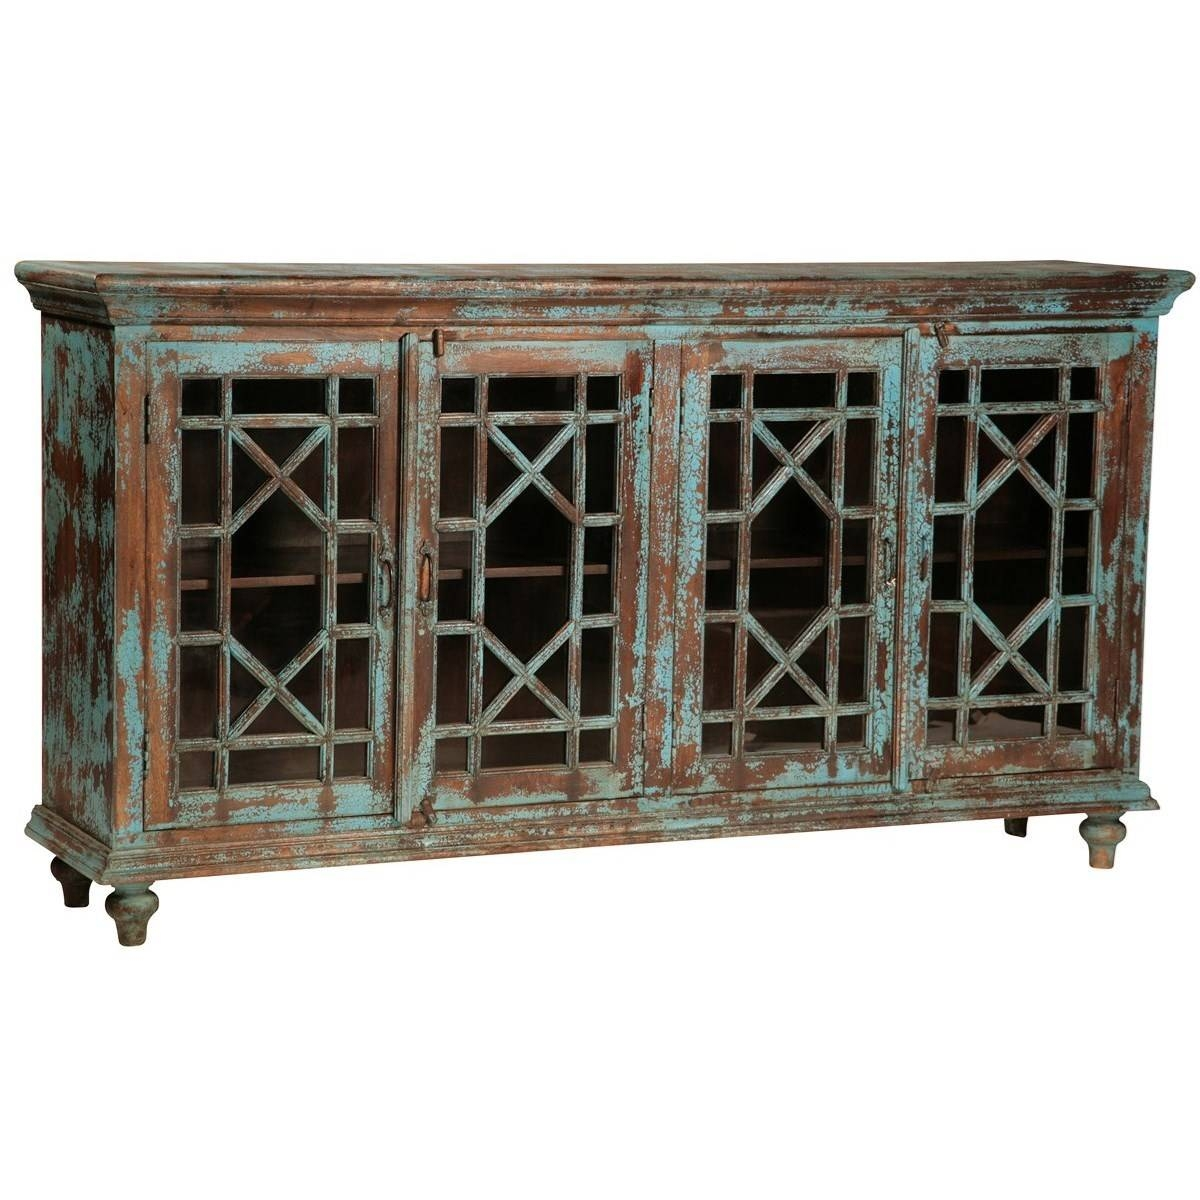 Dovetail Furniture Sideboards/buffets Zamora Teal Crackle With Regard To Most Up To Date Dovetail Sideboards (#5 of 15)